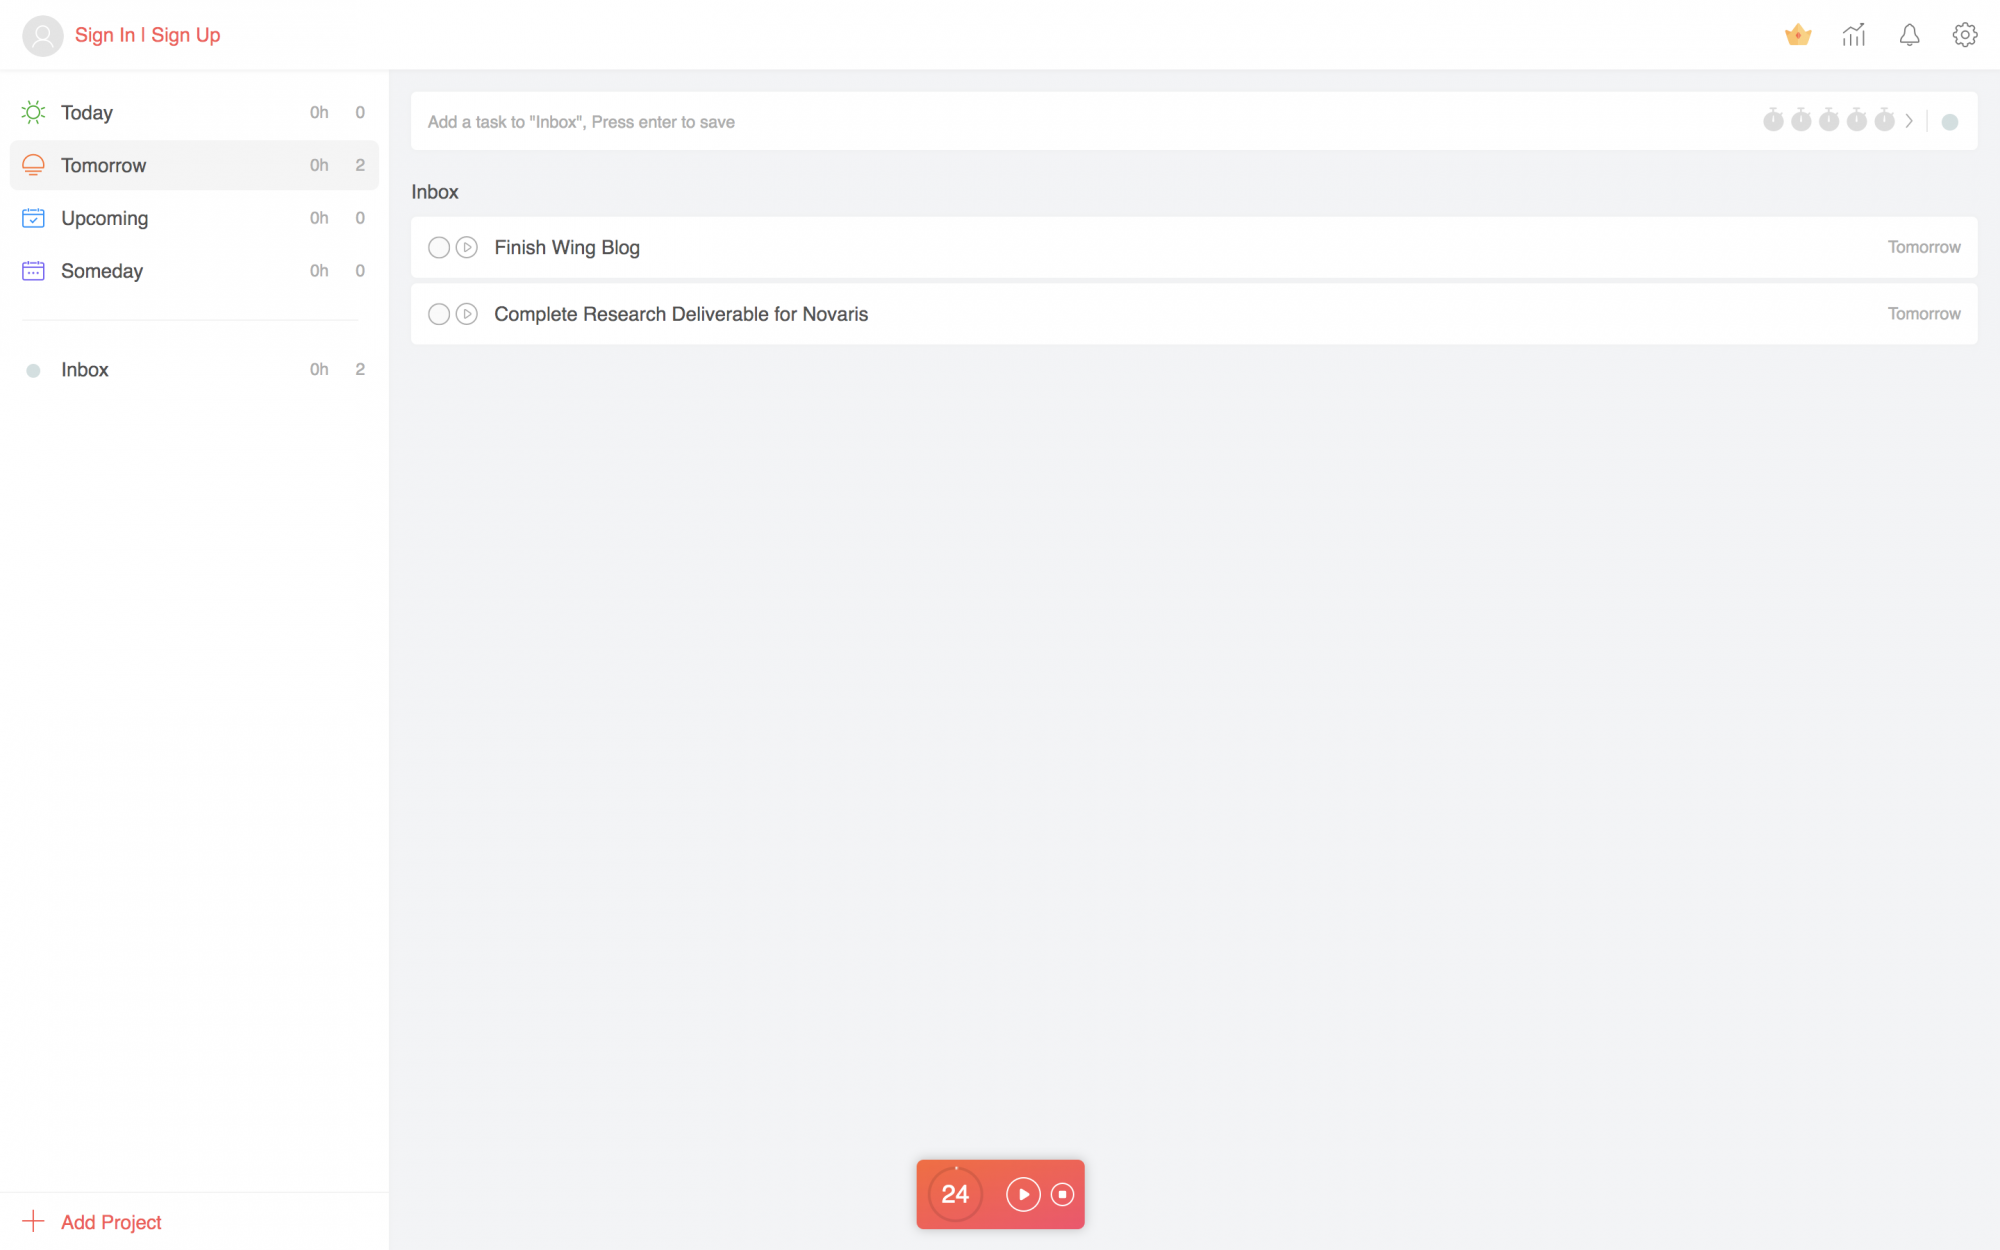 This Pomodoro tracker is one great way to keep track of work time